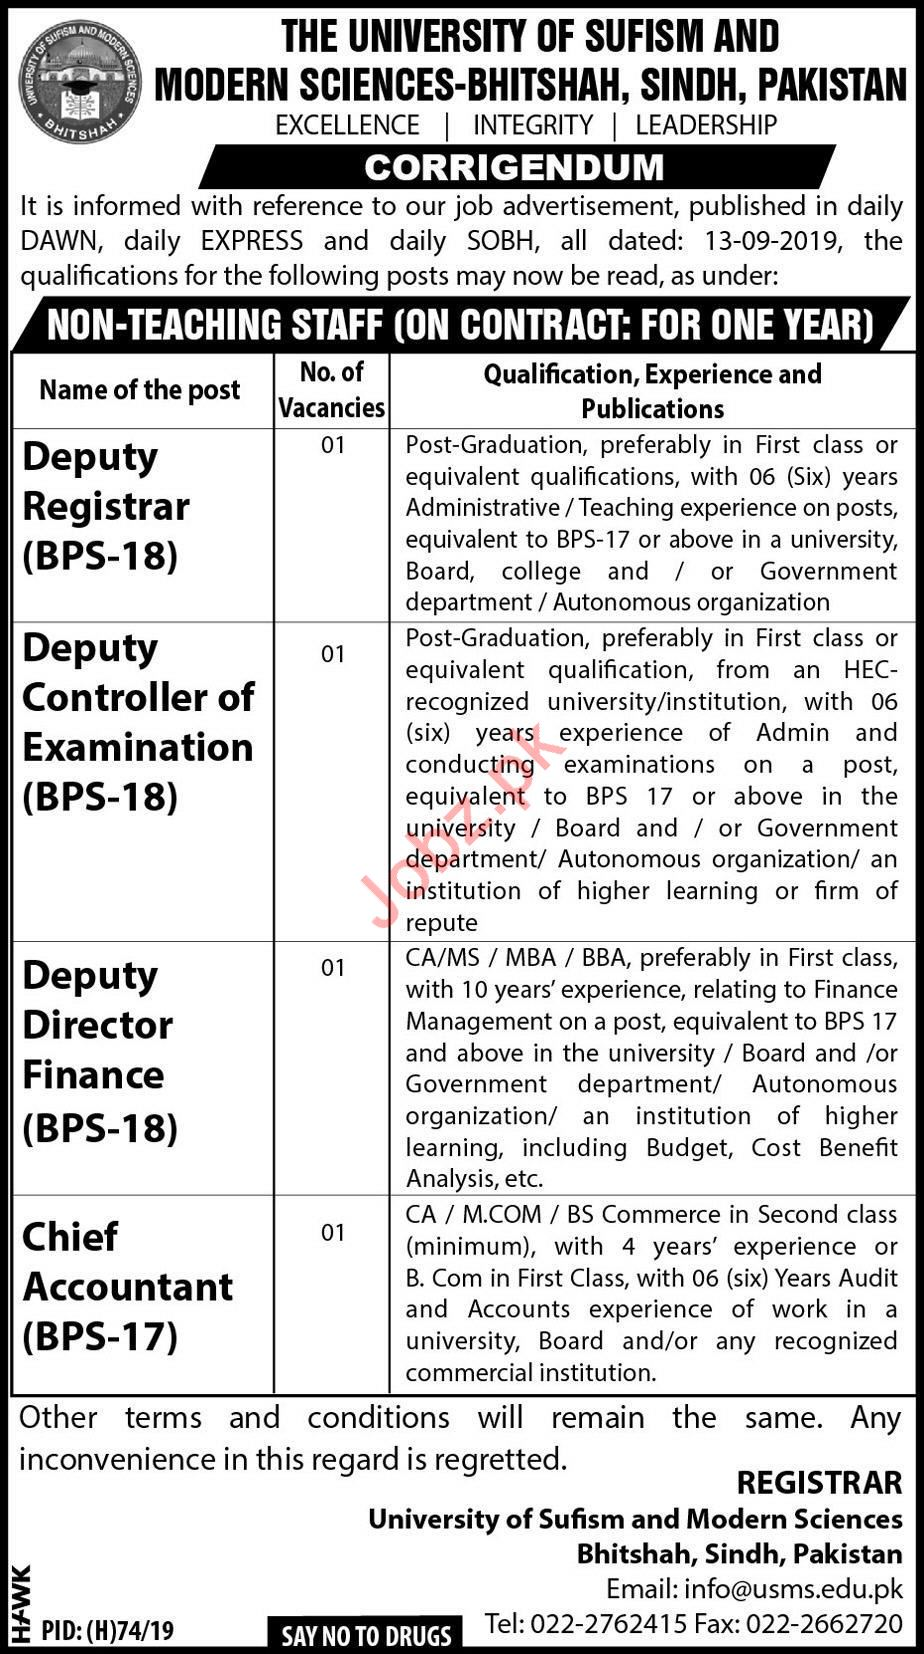 University of Sufism And Modern Sciences USMS Jobs 2019